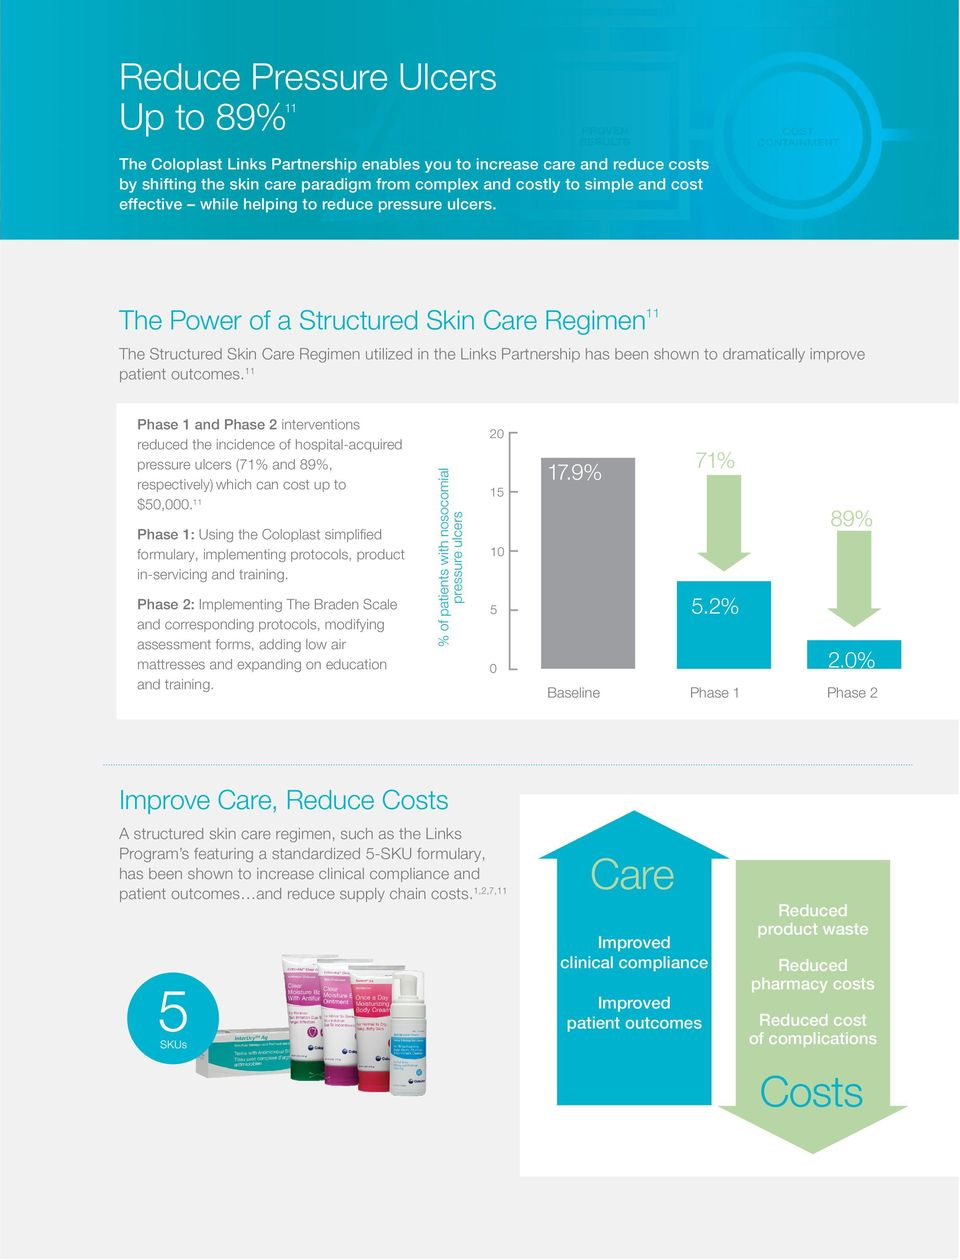 The Power of a Structured Skin Care Regimen 11 The Structured Skin Care Regimen utilized in the Links Partnership has been shown to dramatically improve patient outcomes.